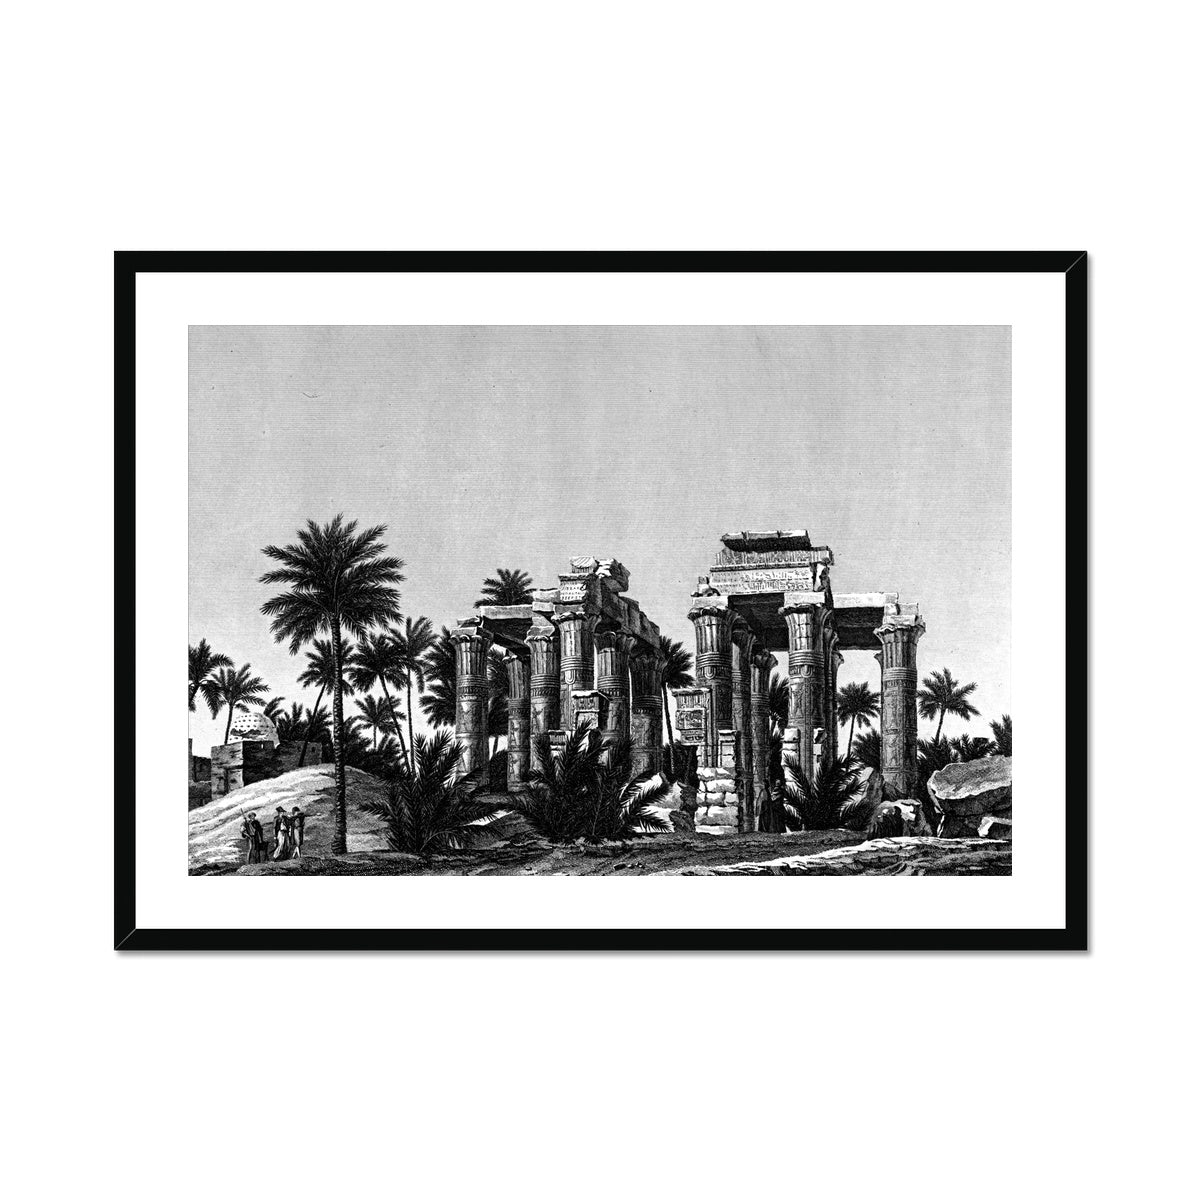 Temple Ruins Perspective View - Qau el-Kebir Egypt -  Framed & Mounted Print